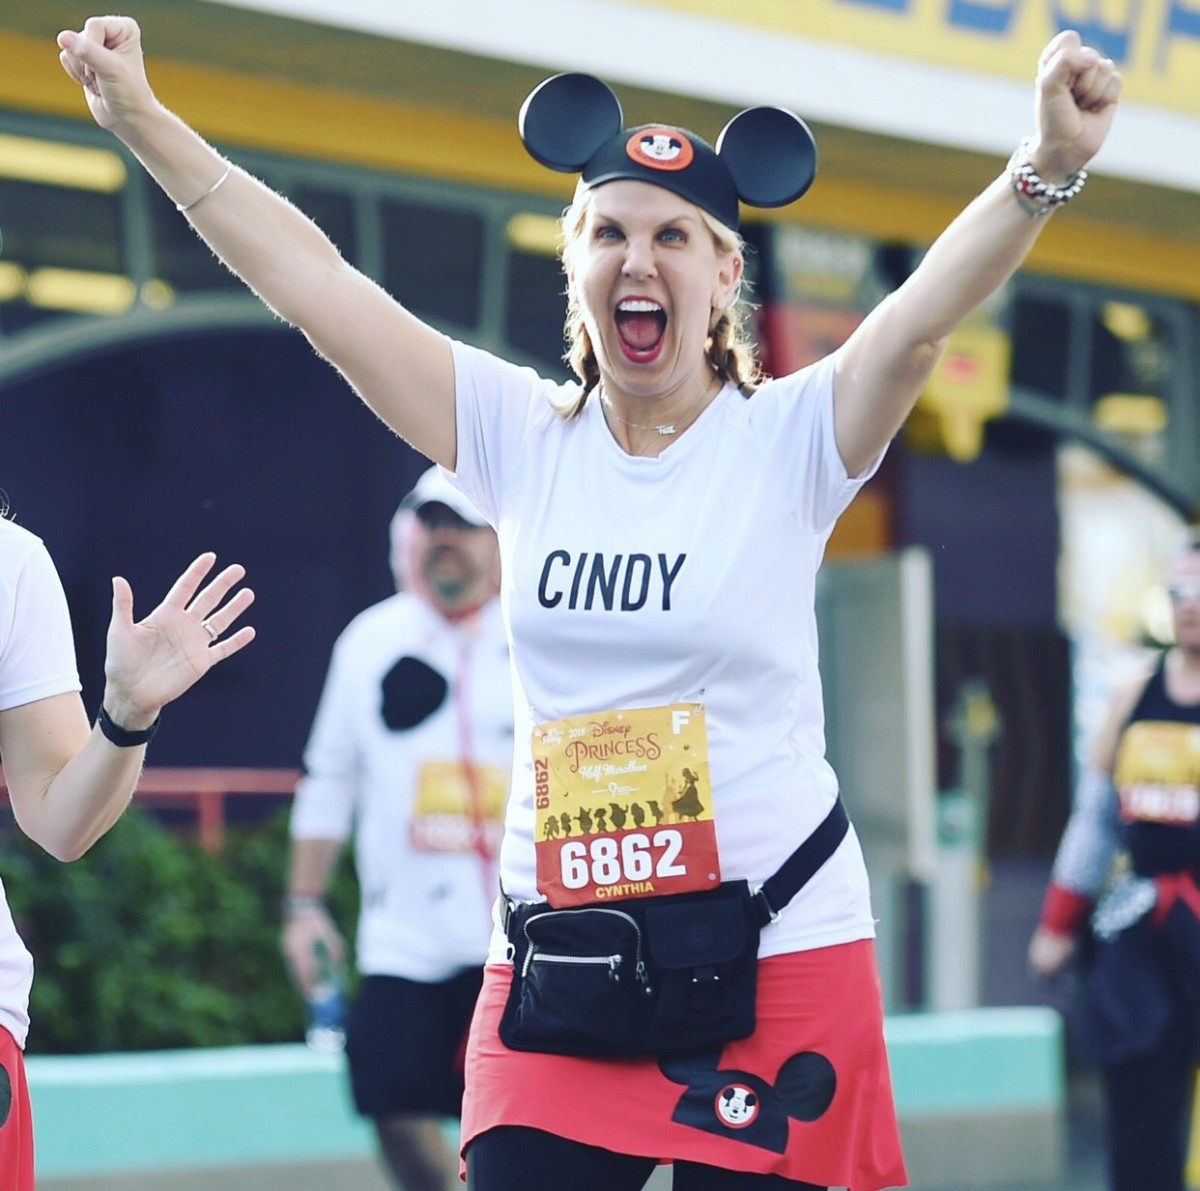 Why runDisney? 5